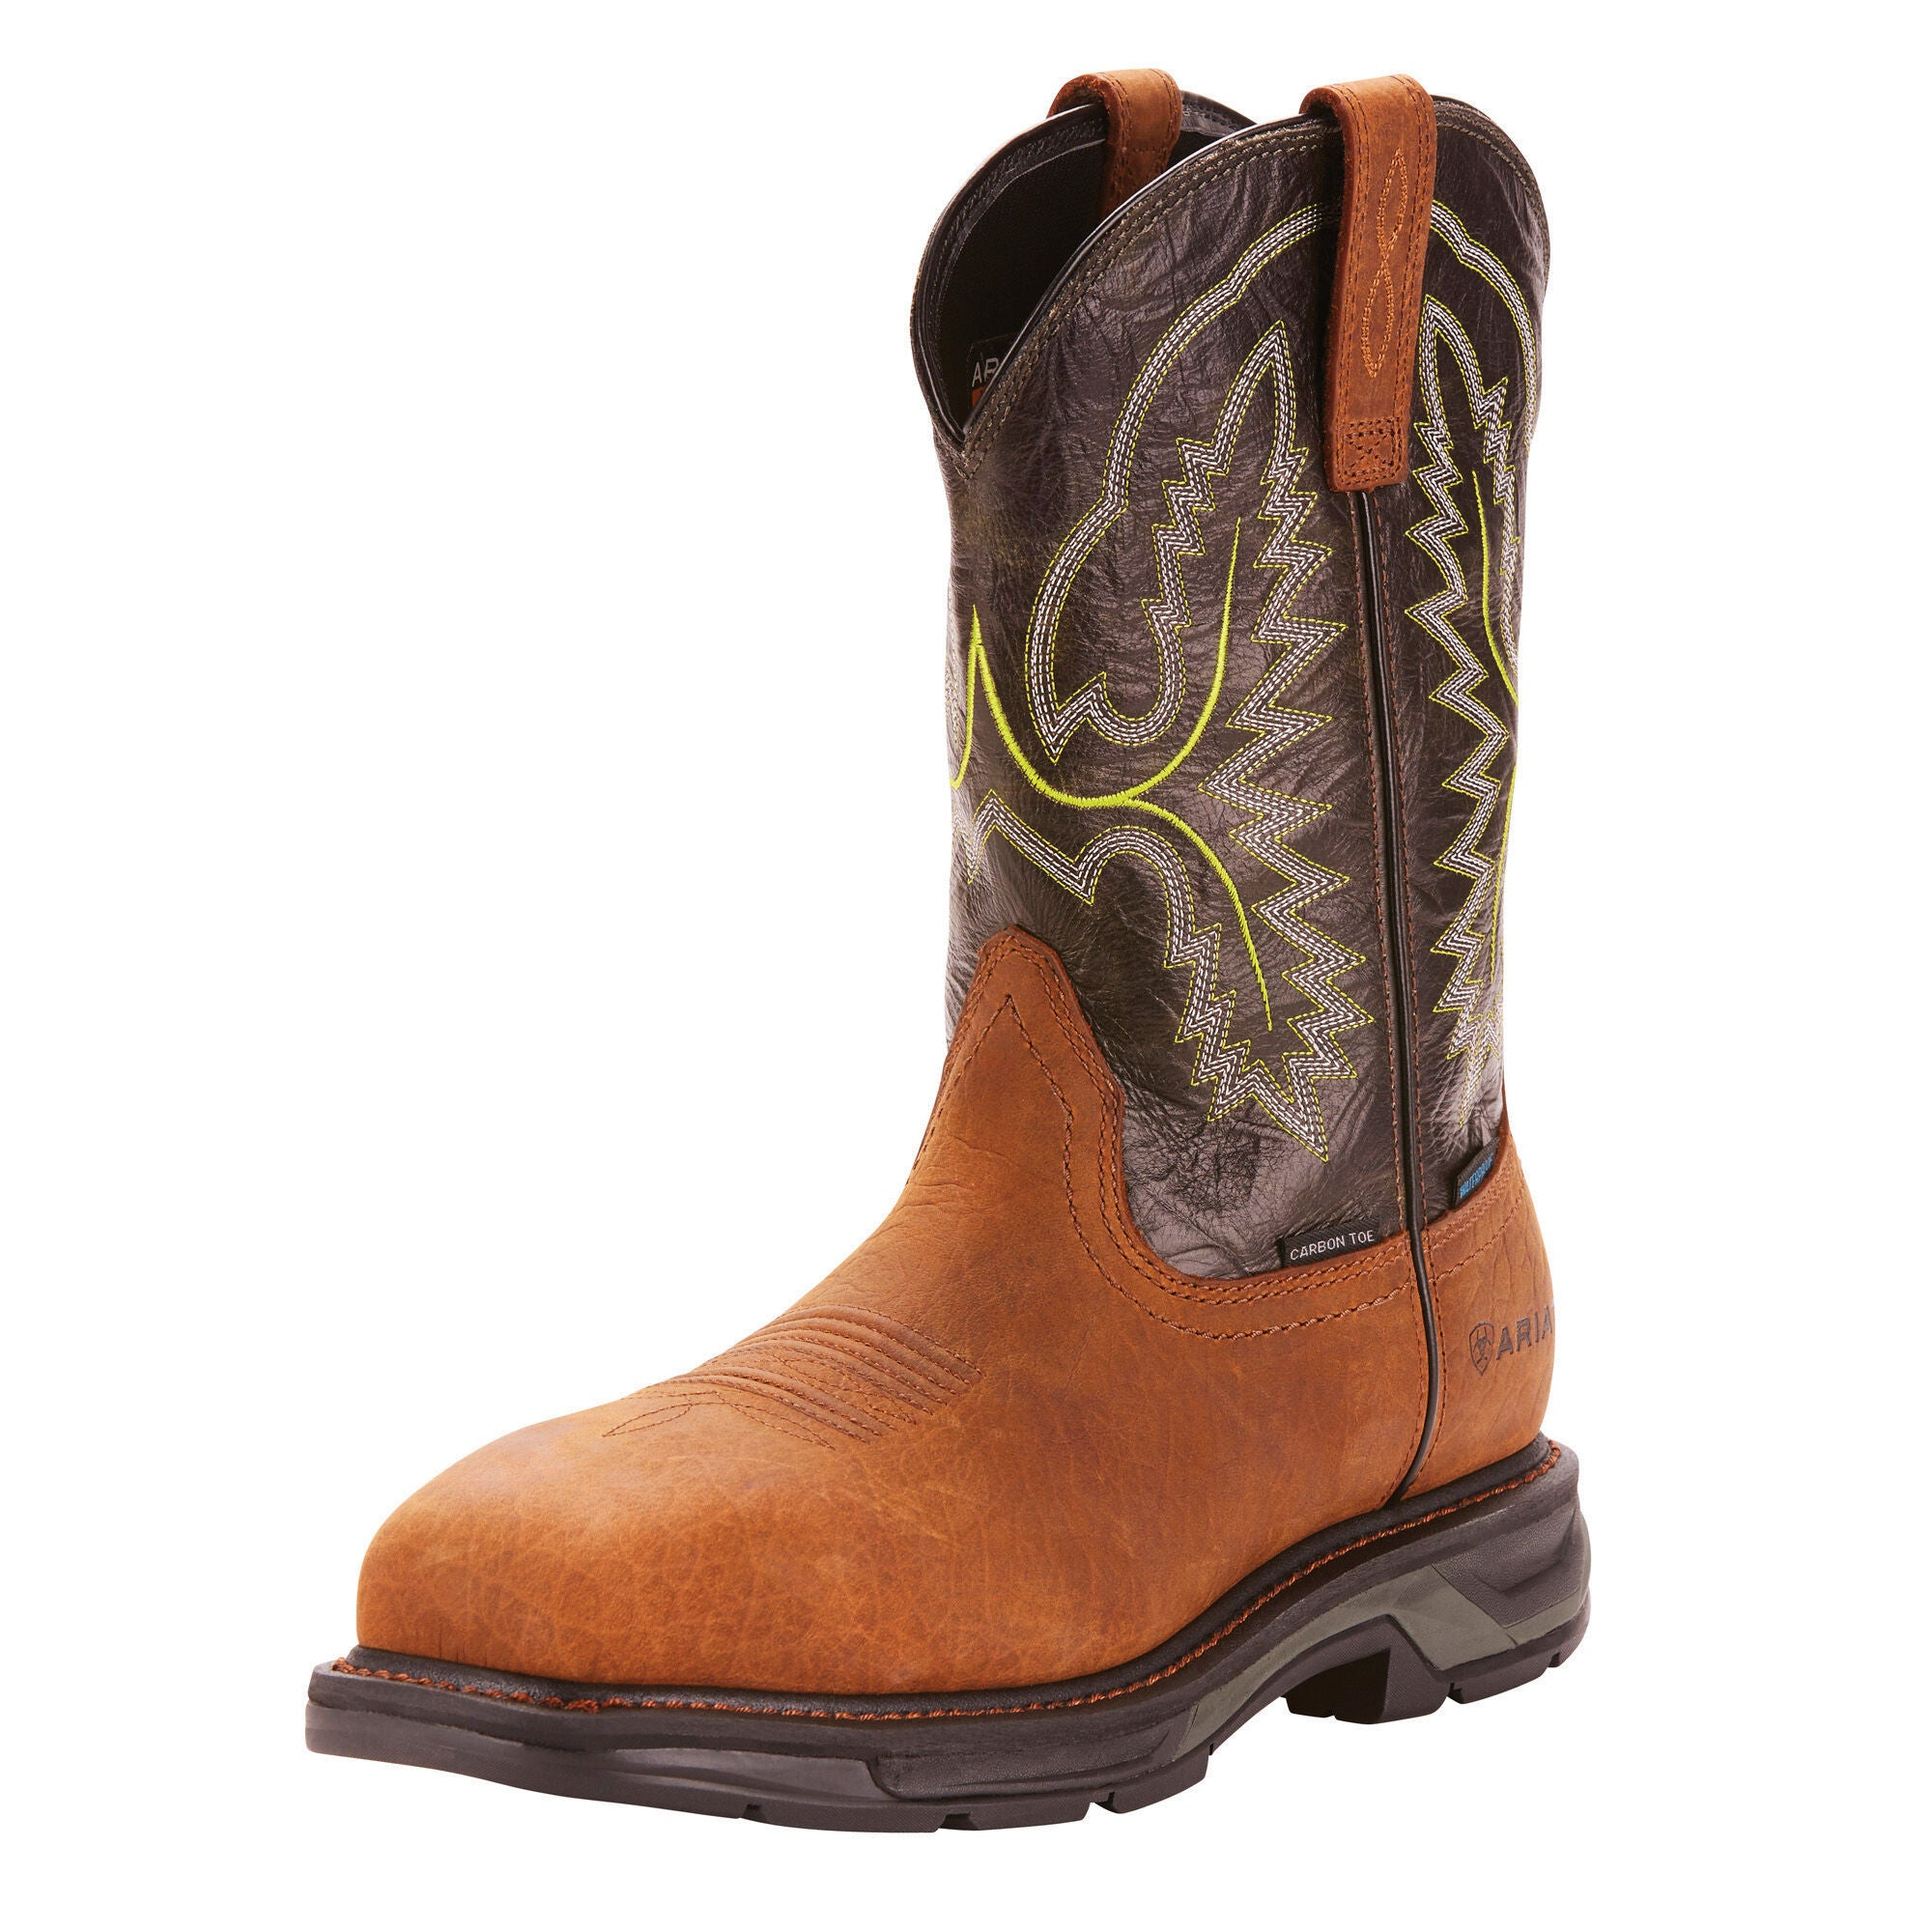 Ariat WorkHog XT Wide Square Toe Waterproof Carbon Toe Work Boot